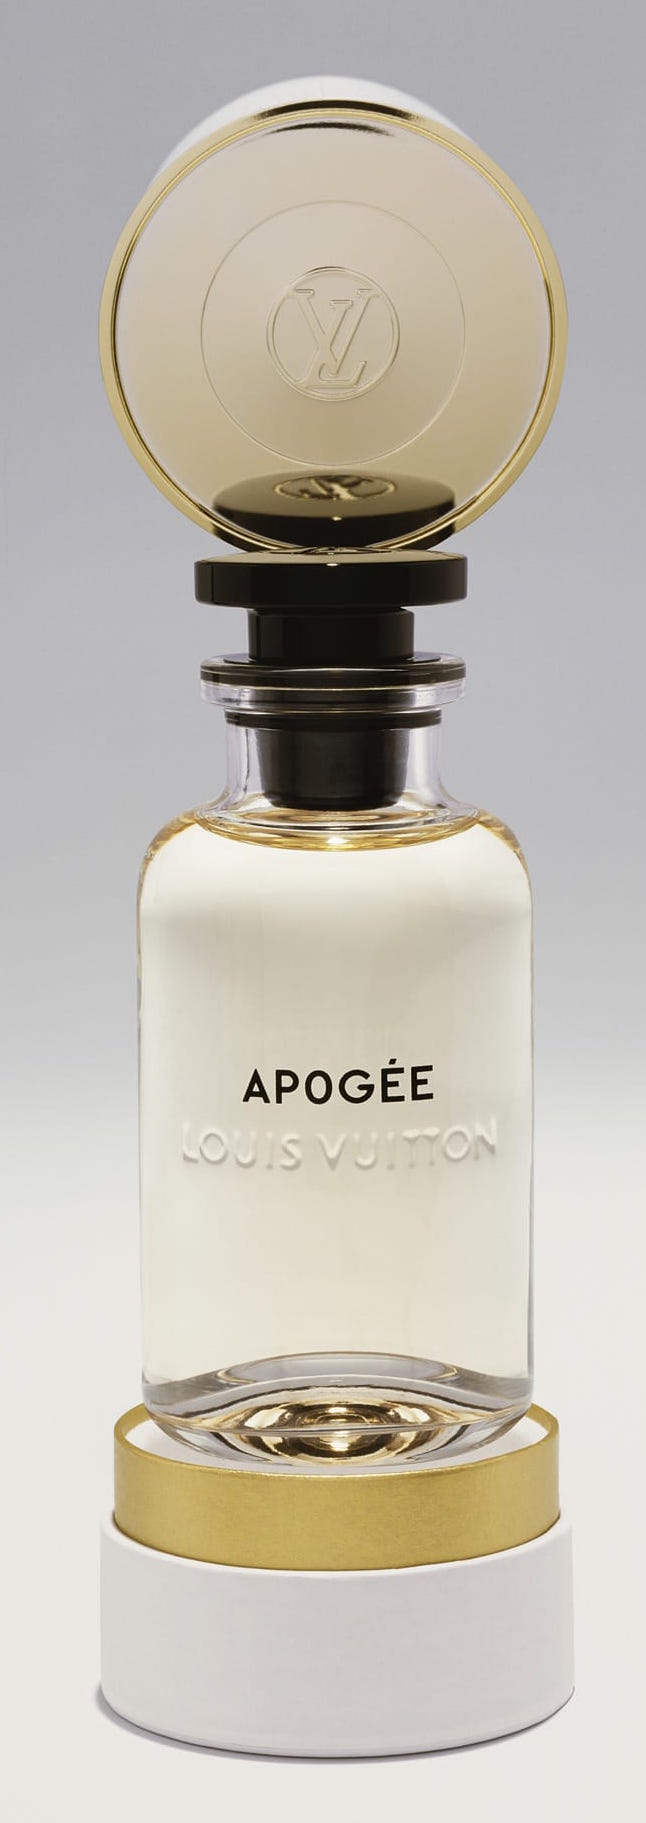 Apogee Louis Vuitton perfume